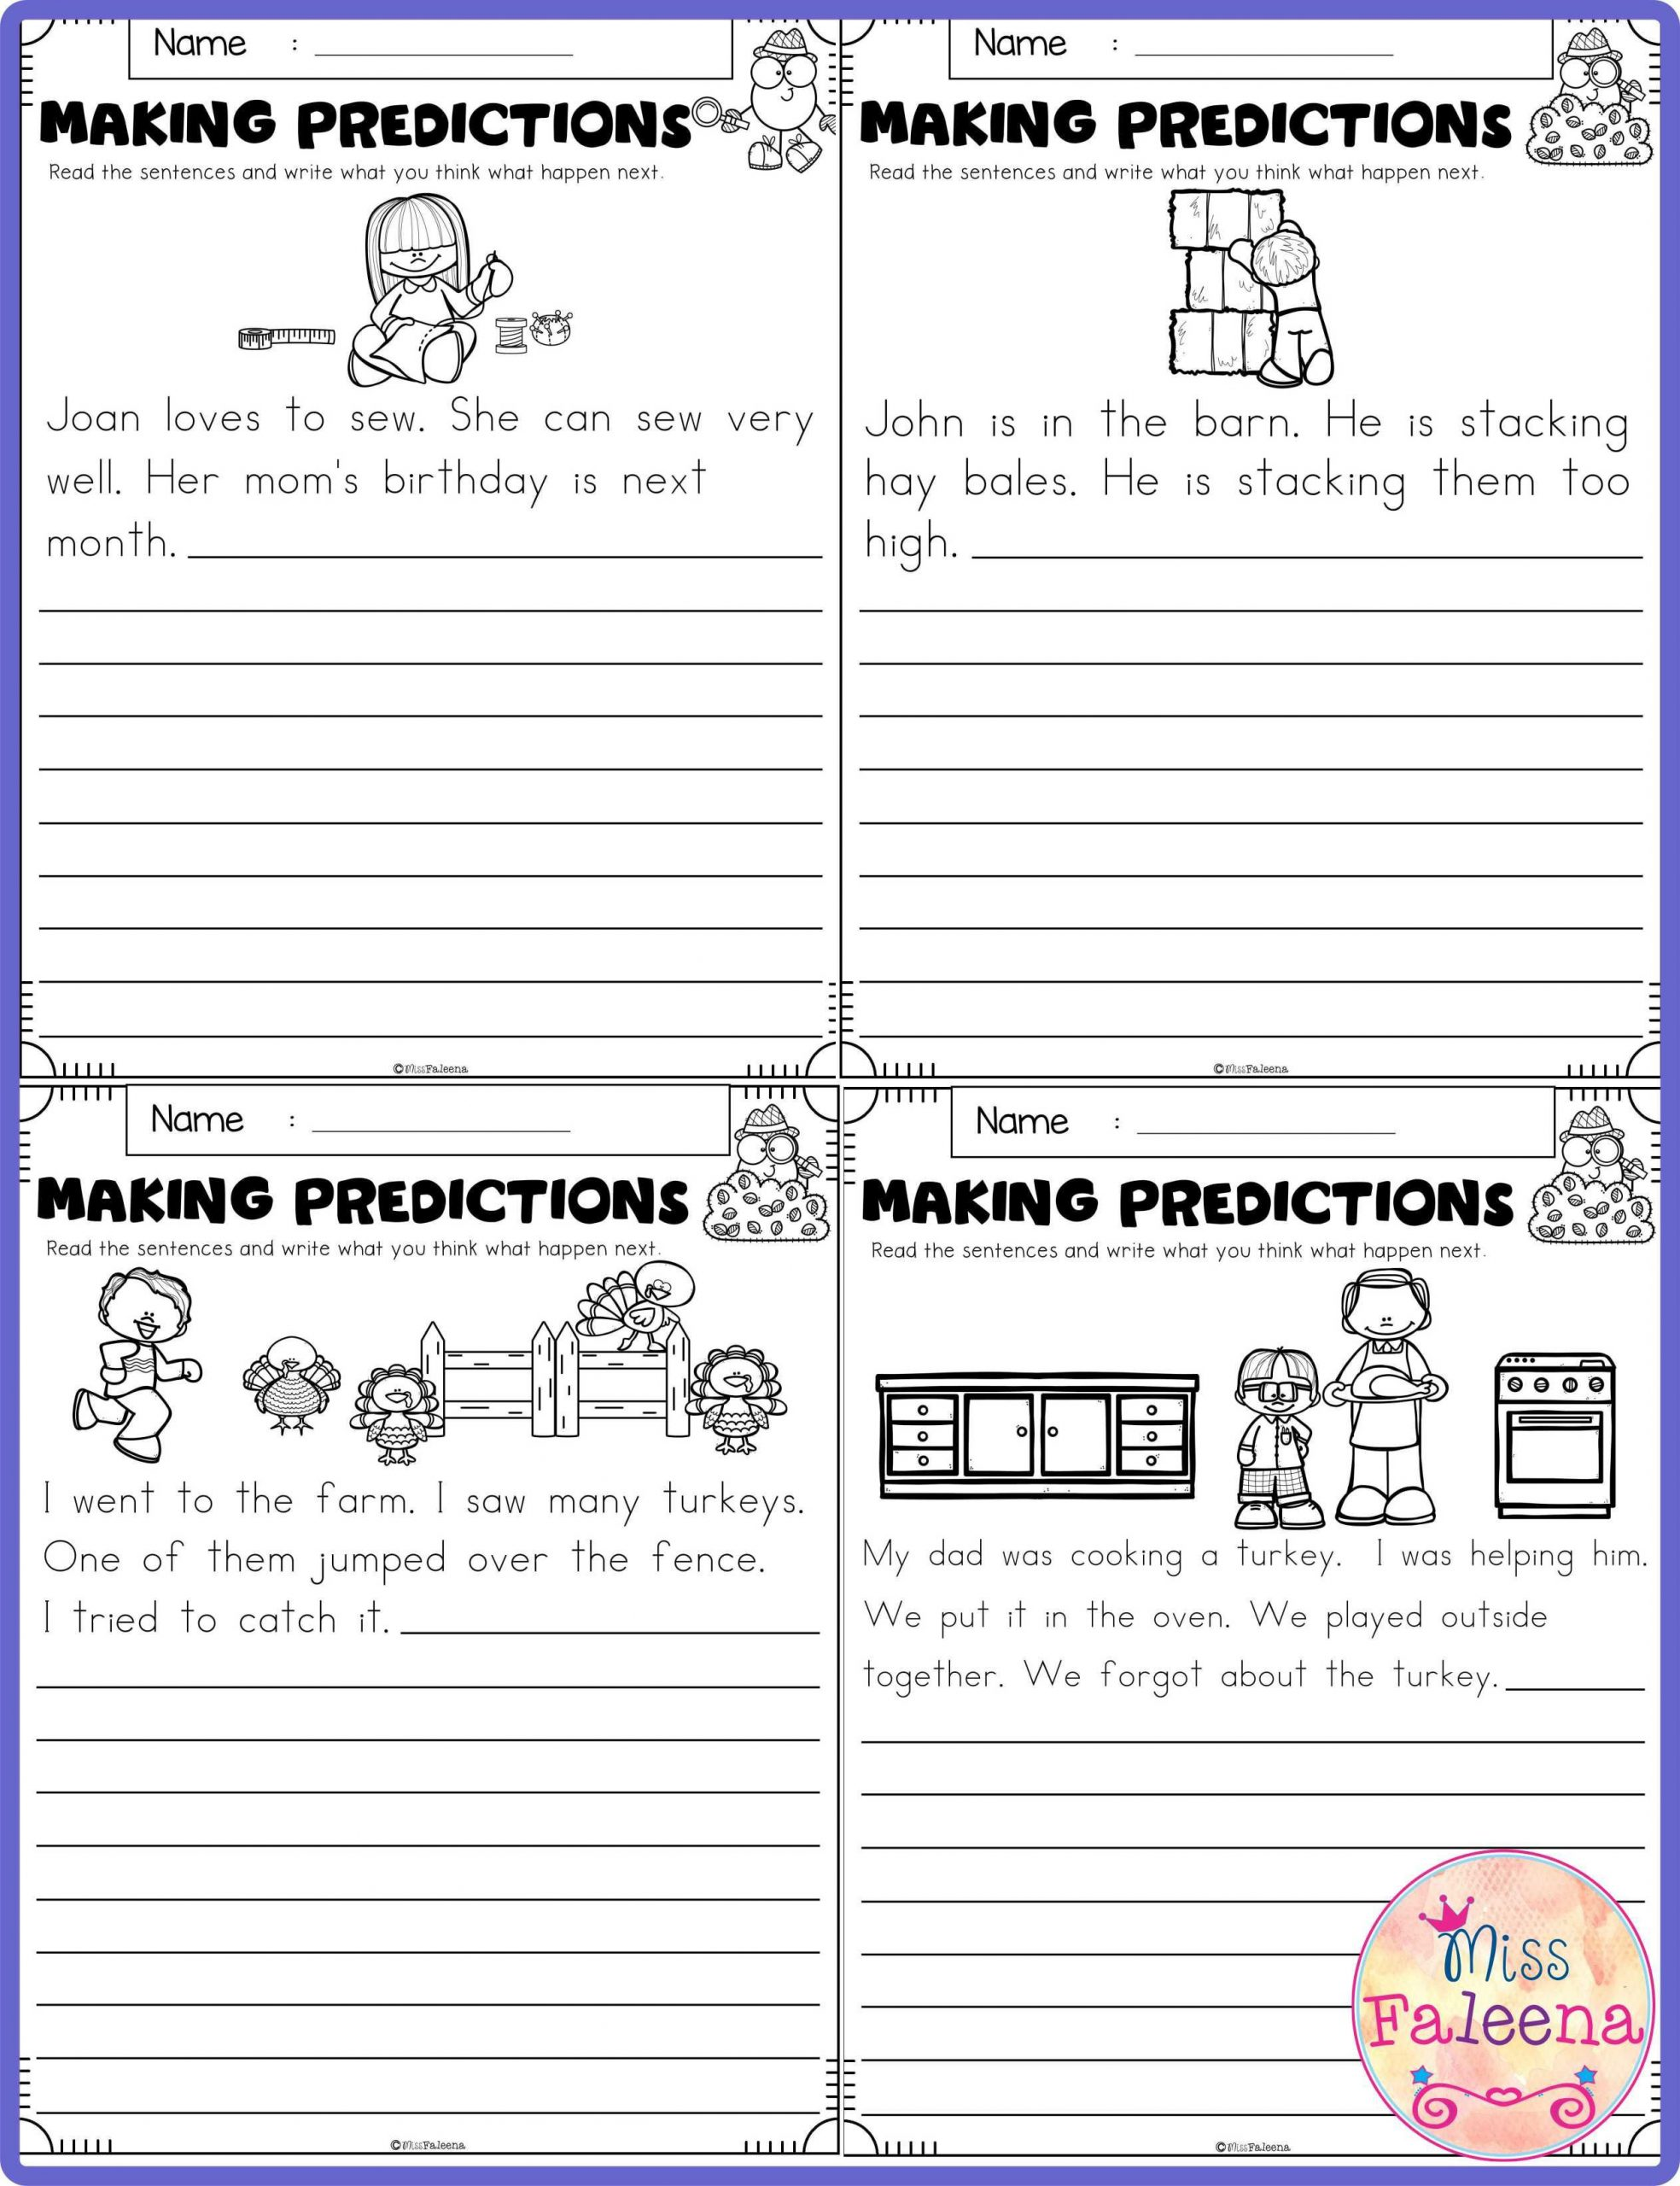 Prediction Worksheets for 3rd Grade November Making Predictions Contains with total 30 Pages Of